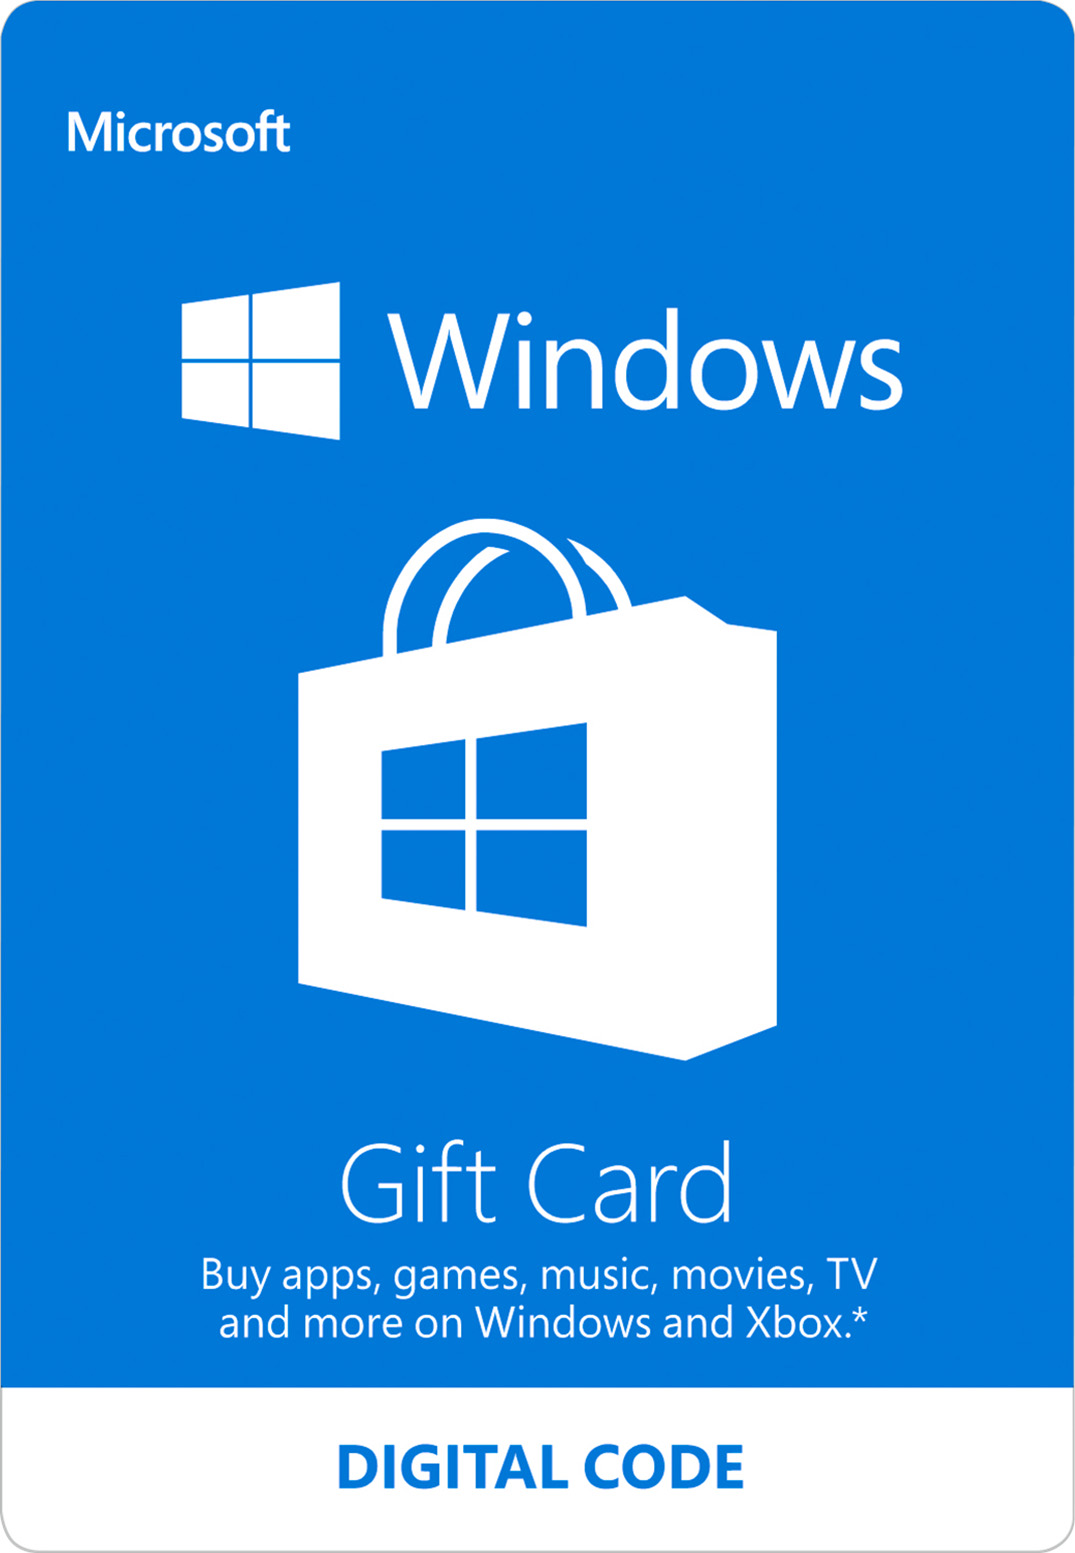 Windows Store Digital Gift Card: $50.00